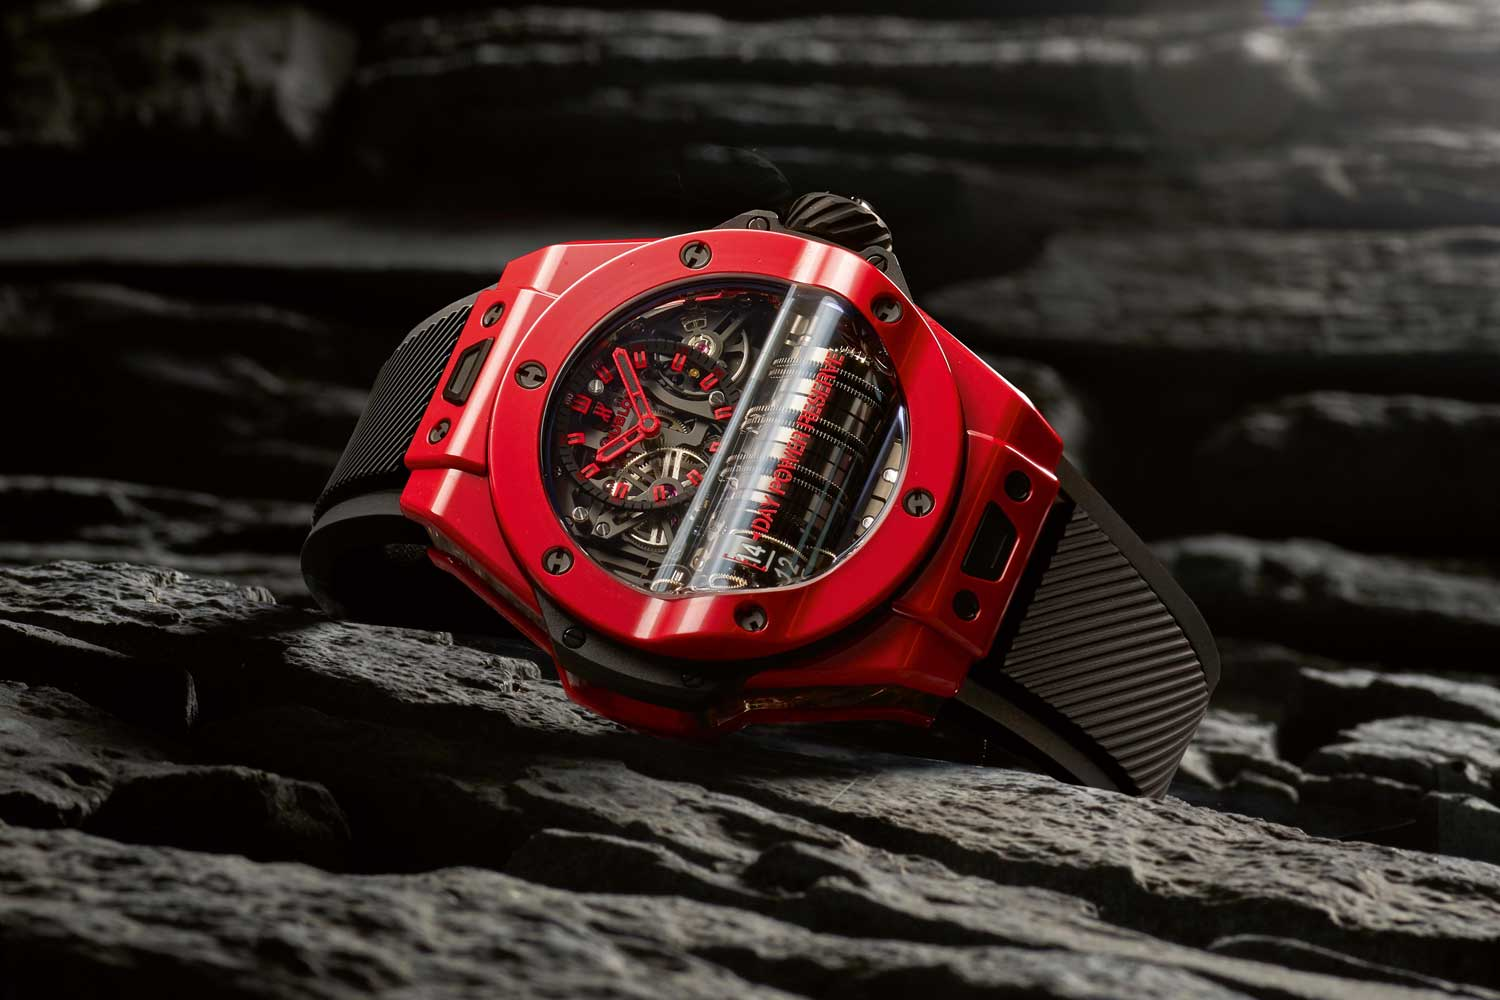 The Big Bang MP-11 Red Magic, a bold red ceramic material made by fusing iron oxides into ceramic.